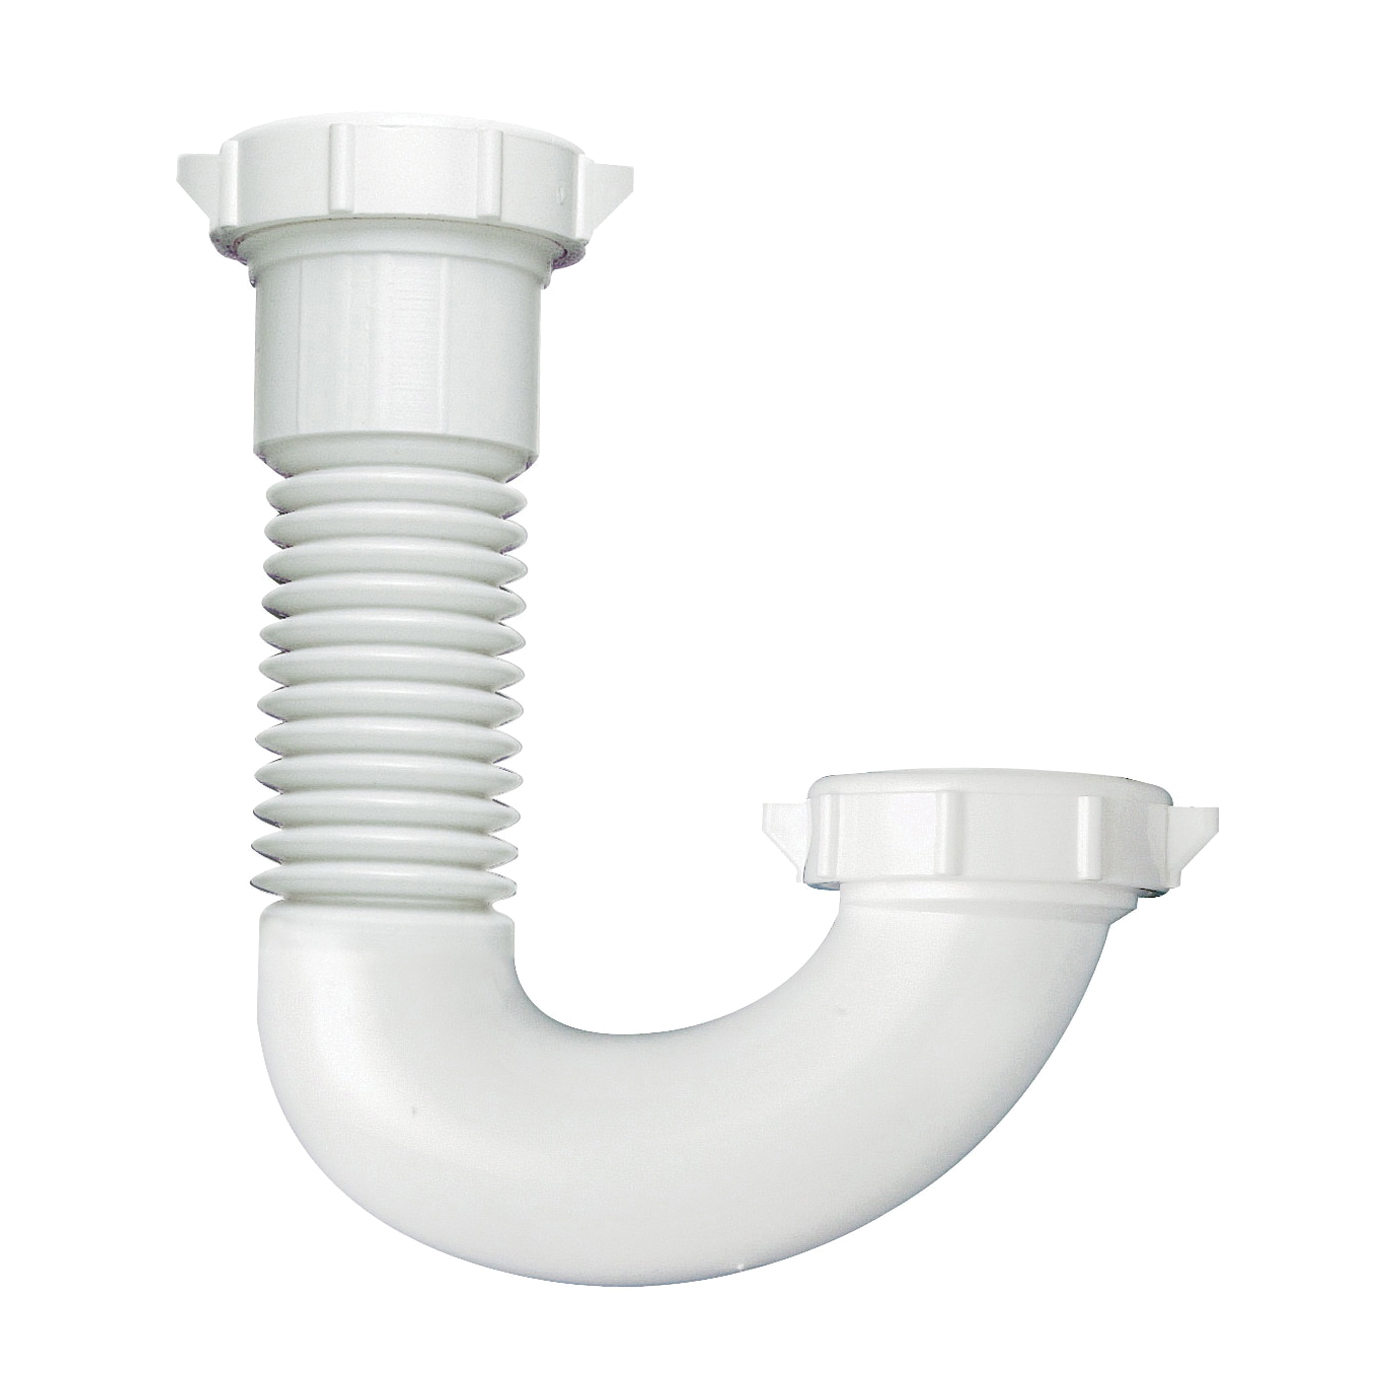 Picture of Plumb Pak PP812-50 J-bend, 1-1/2, 1/2 x 1-1/4 in, Slip Joint, Plastic, White